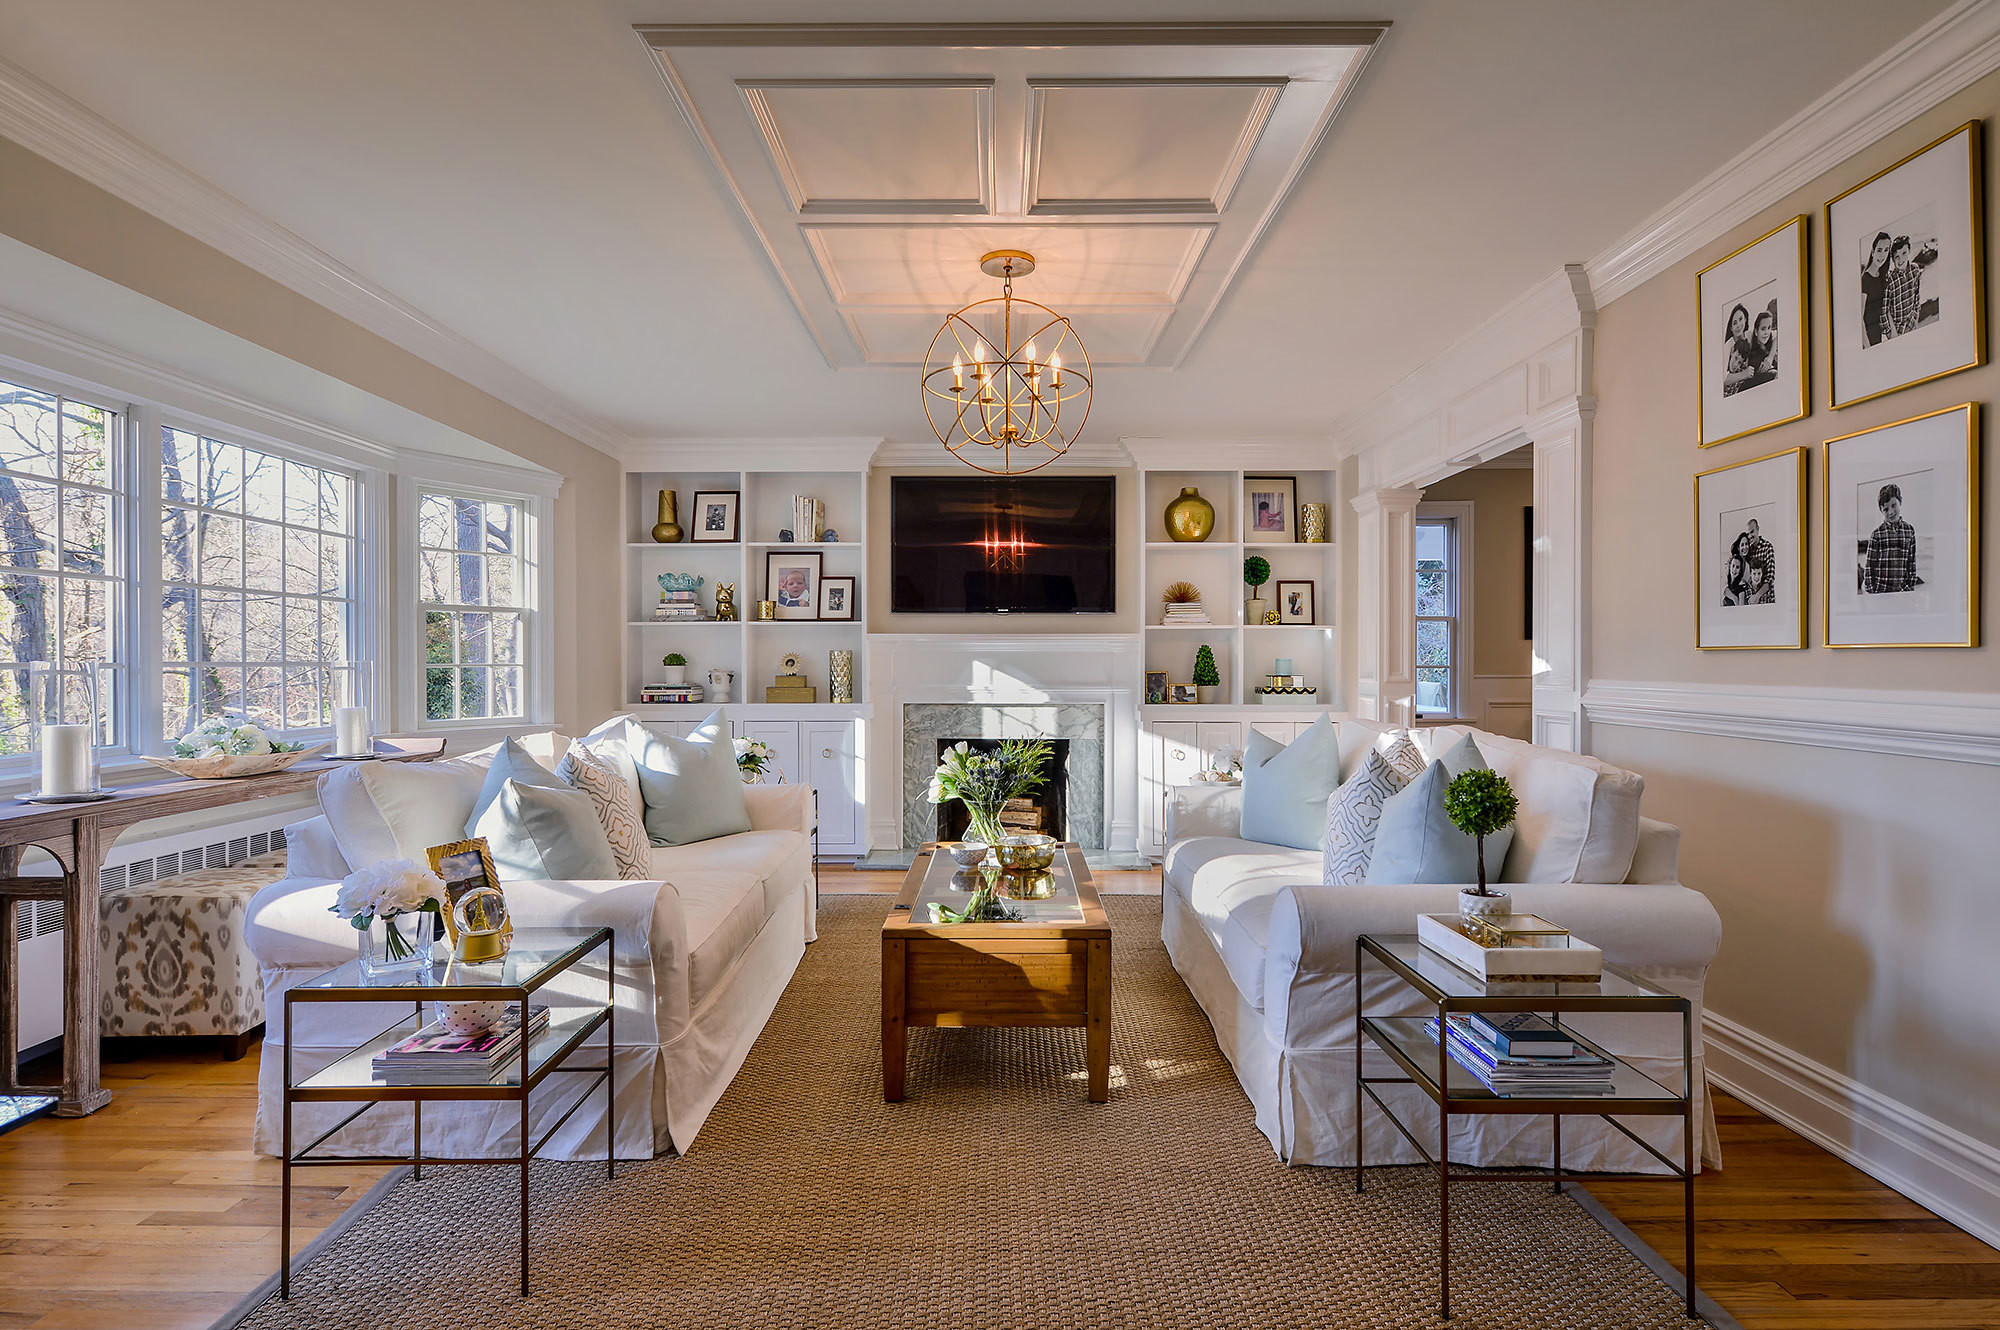 With The Help Of Interior Designer Jeanne Campana Fashion Designer Kara Mendelsohn Embraced A Serene